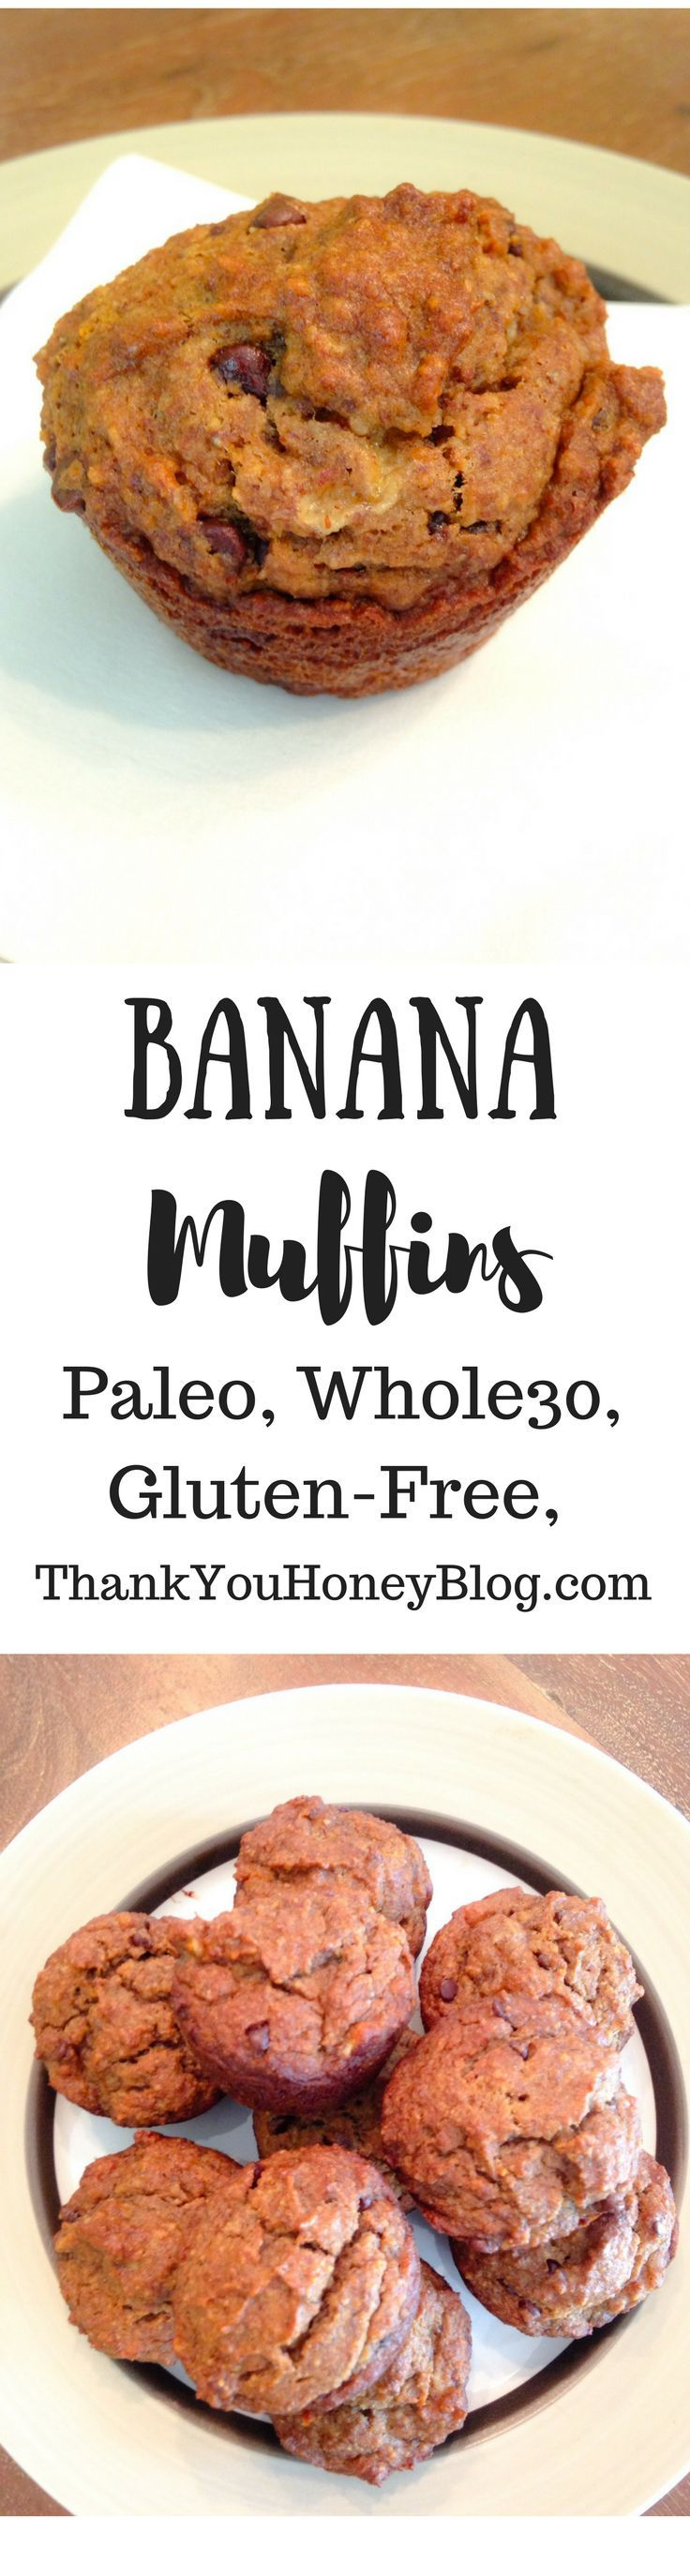 Click through & PIN IT to read later & Follow + Subscribe! Banana Muffins, Paleo, Gluten- Free, Grain- Free, Healthy, Banana, Simple Recipe, Breakfast, Brunch, Recipe, Paleo Recipe, Snack, Muffins, Whole 30, Easy Recipe,